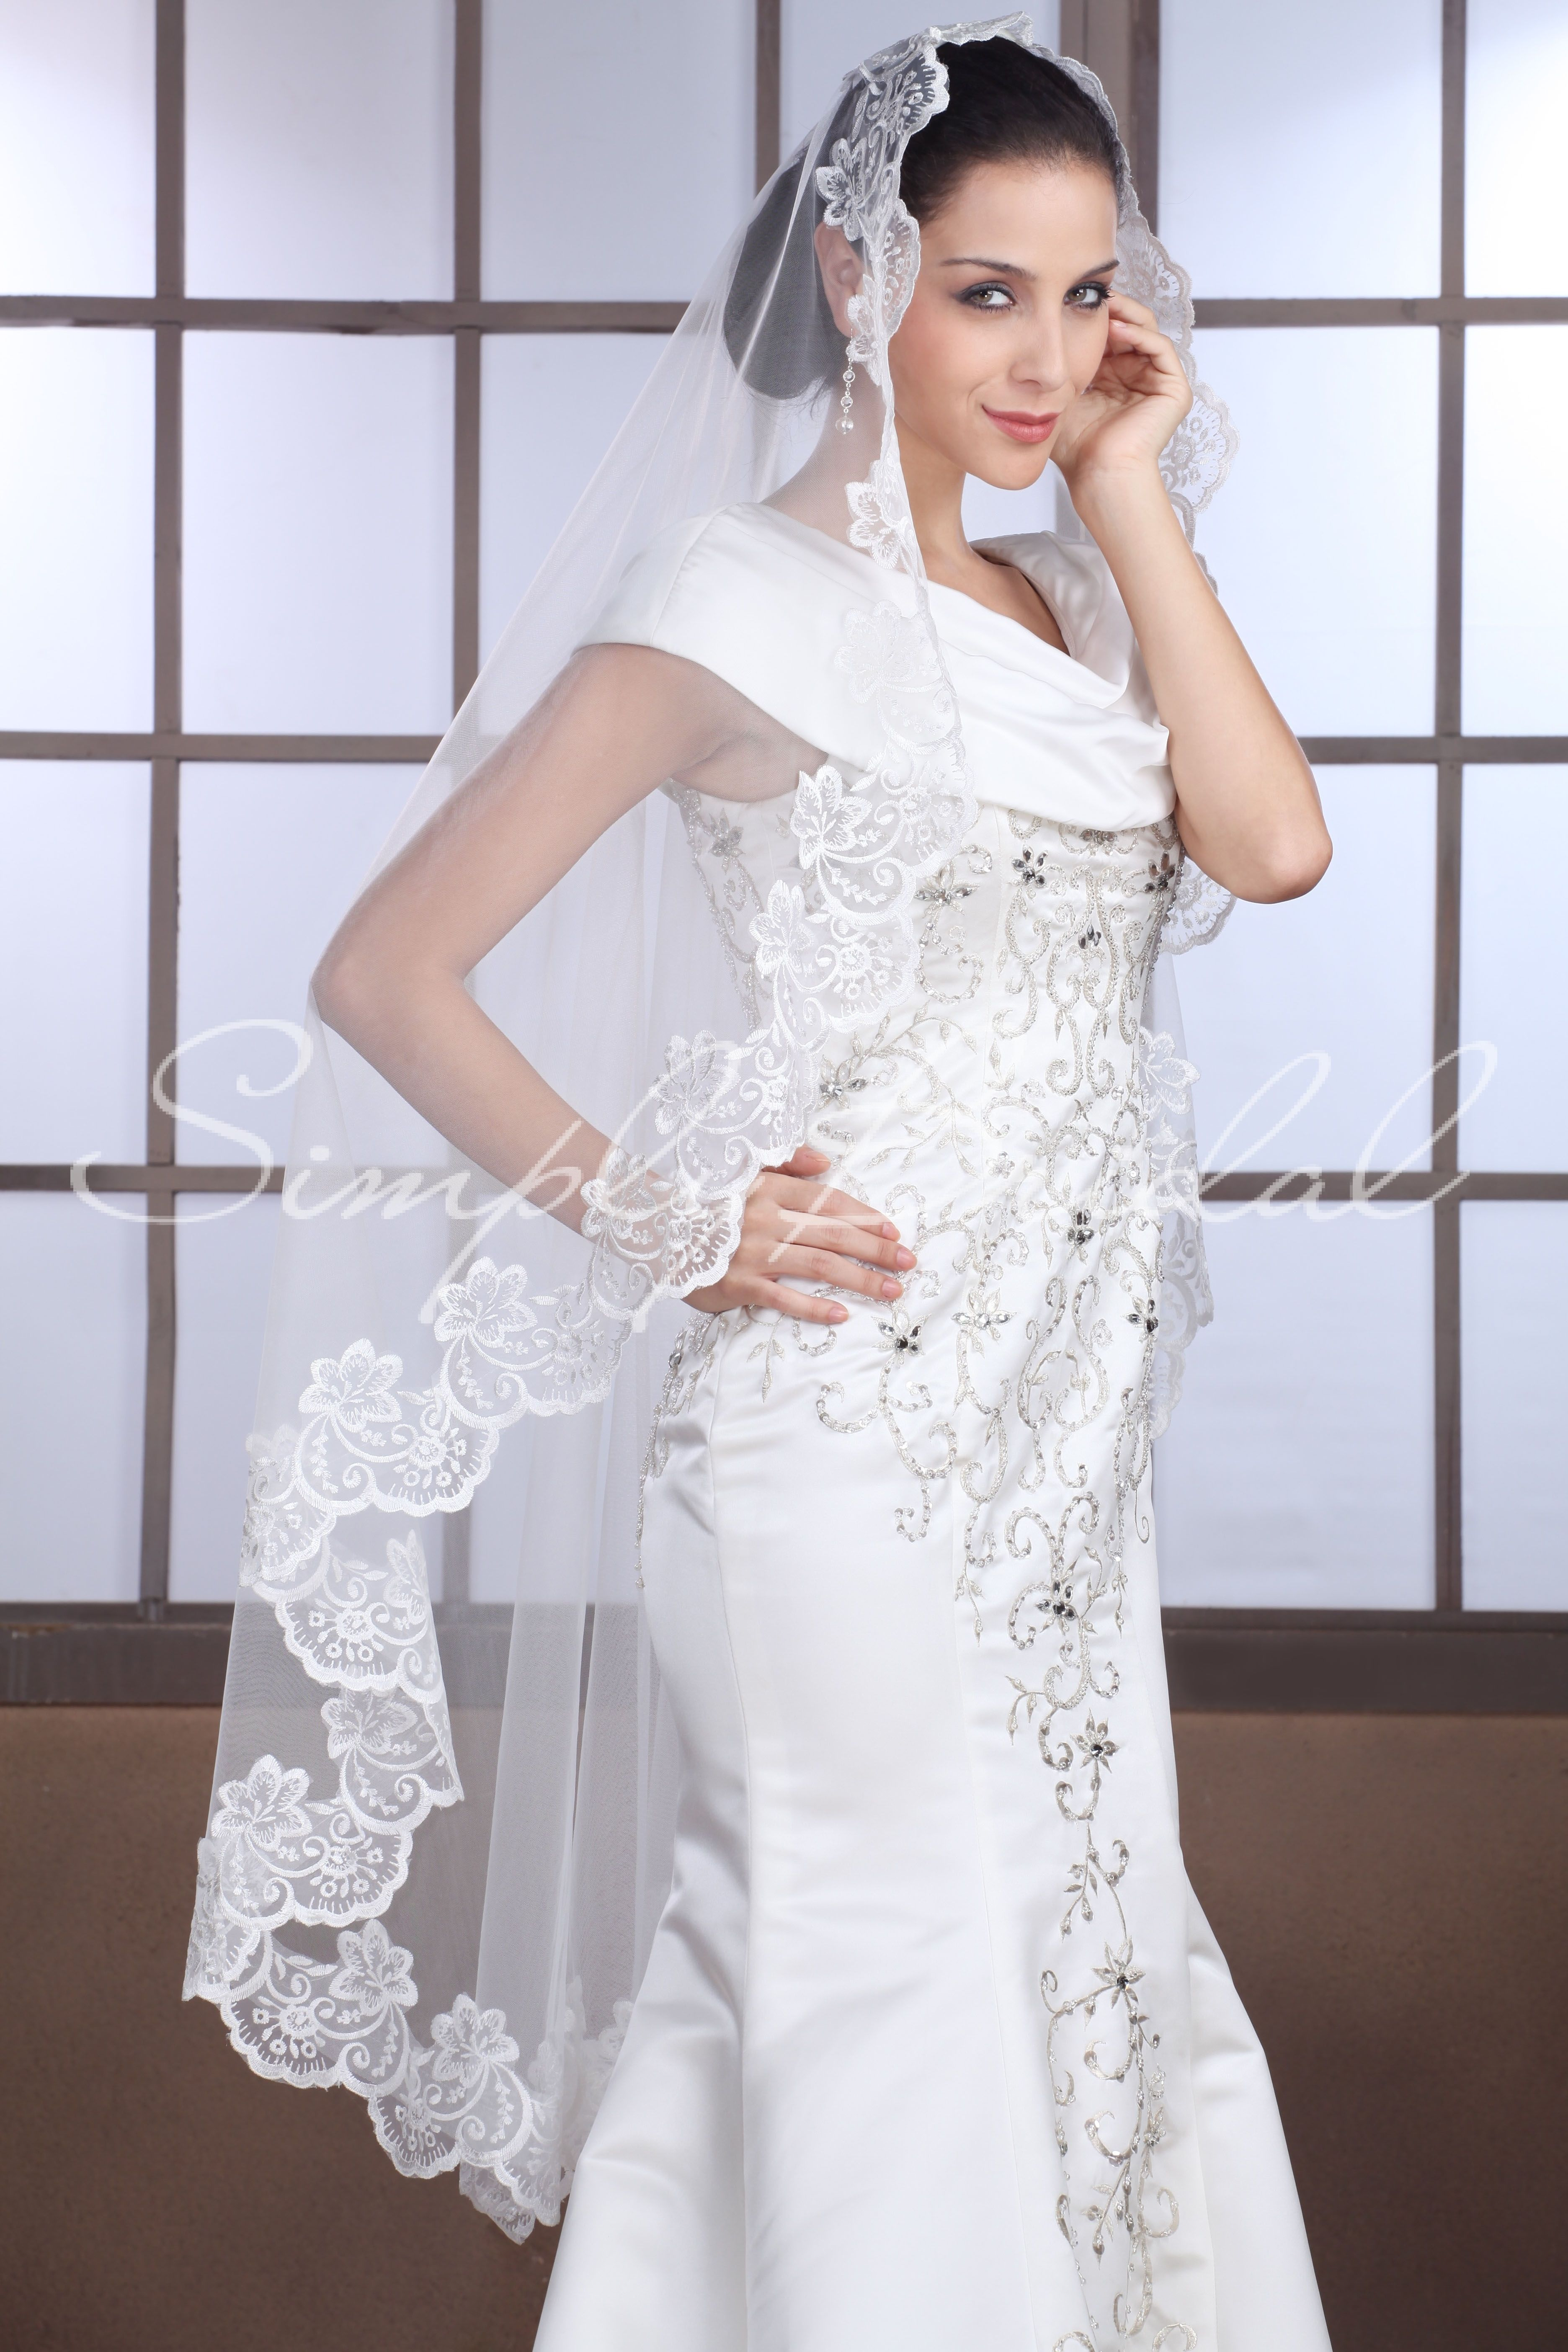 87089 - One Tier 50 | Veil, Wedding accessories and Wedding